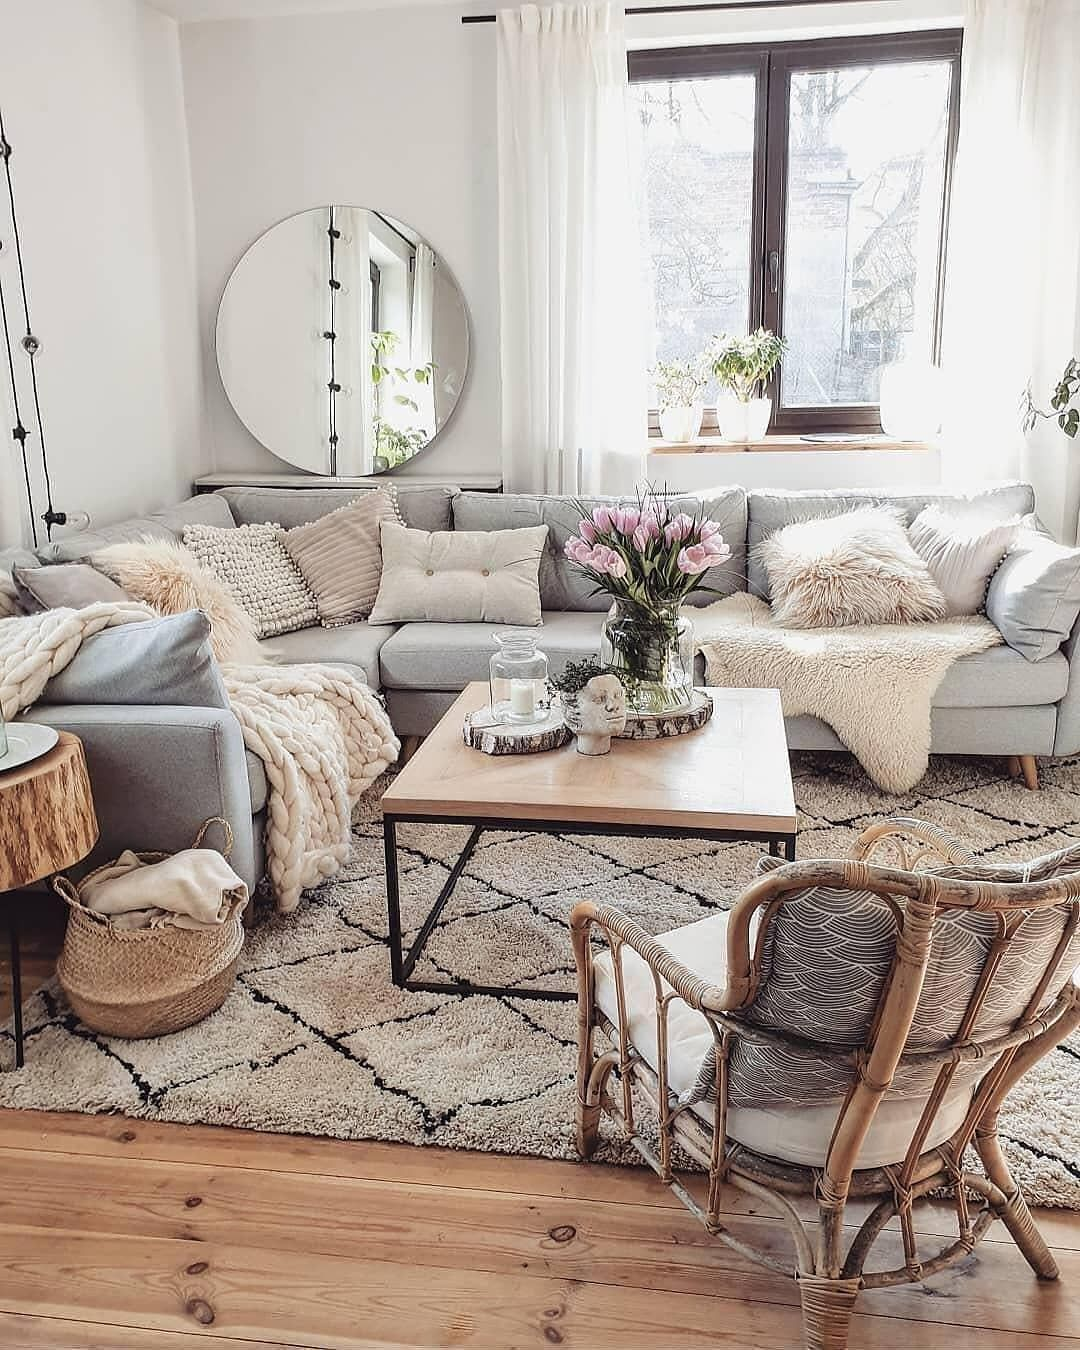 Cozy Interior Design Ideas Using Throw Pillows And Wooden Elements With Pastel I Living Room Decor Apartment Scandinavian Design Living Room Rustic Living Room